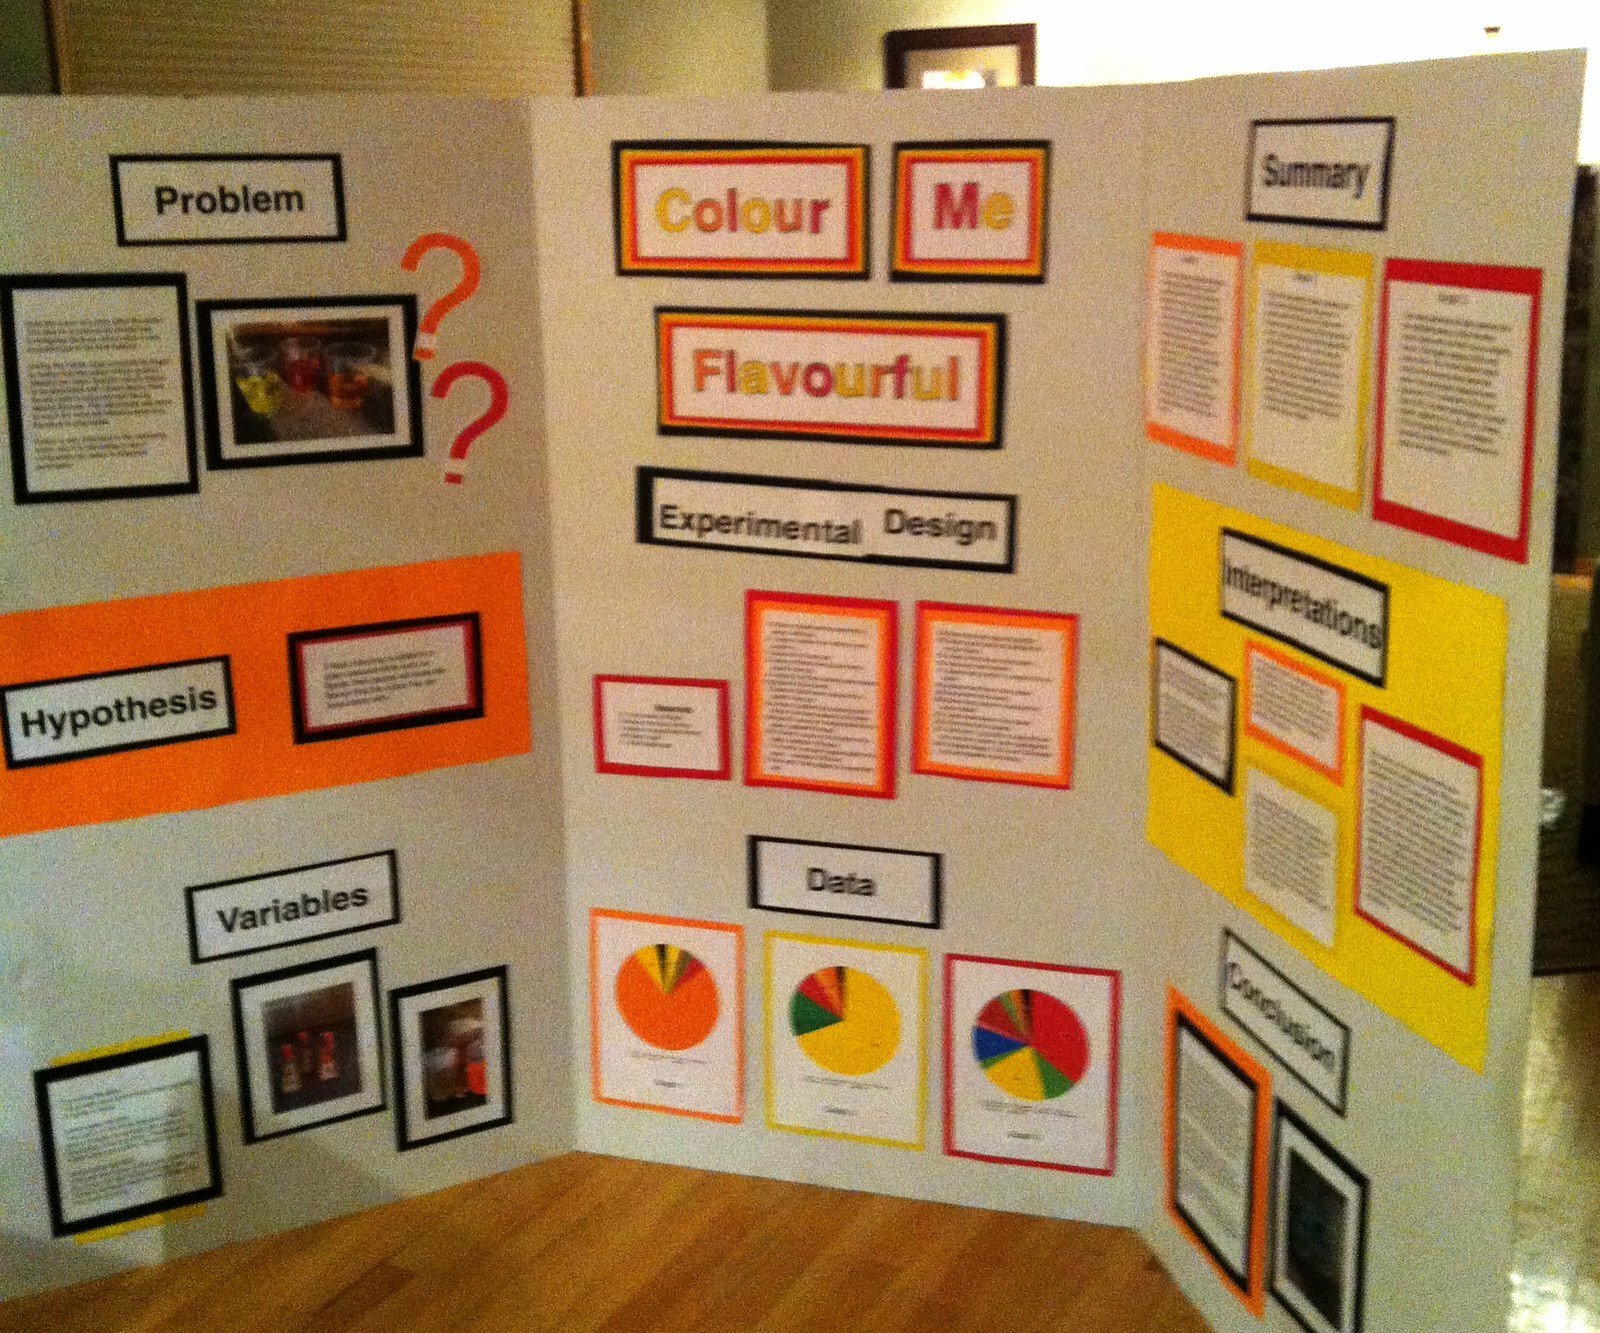 science fair board on How colourful affects taste perception